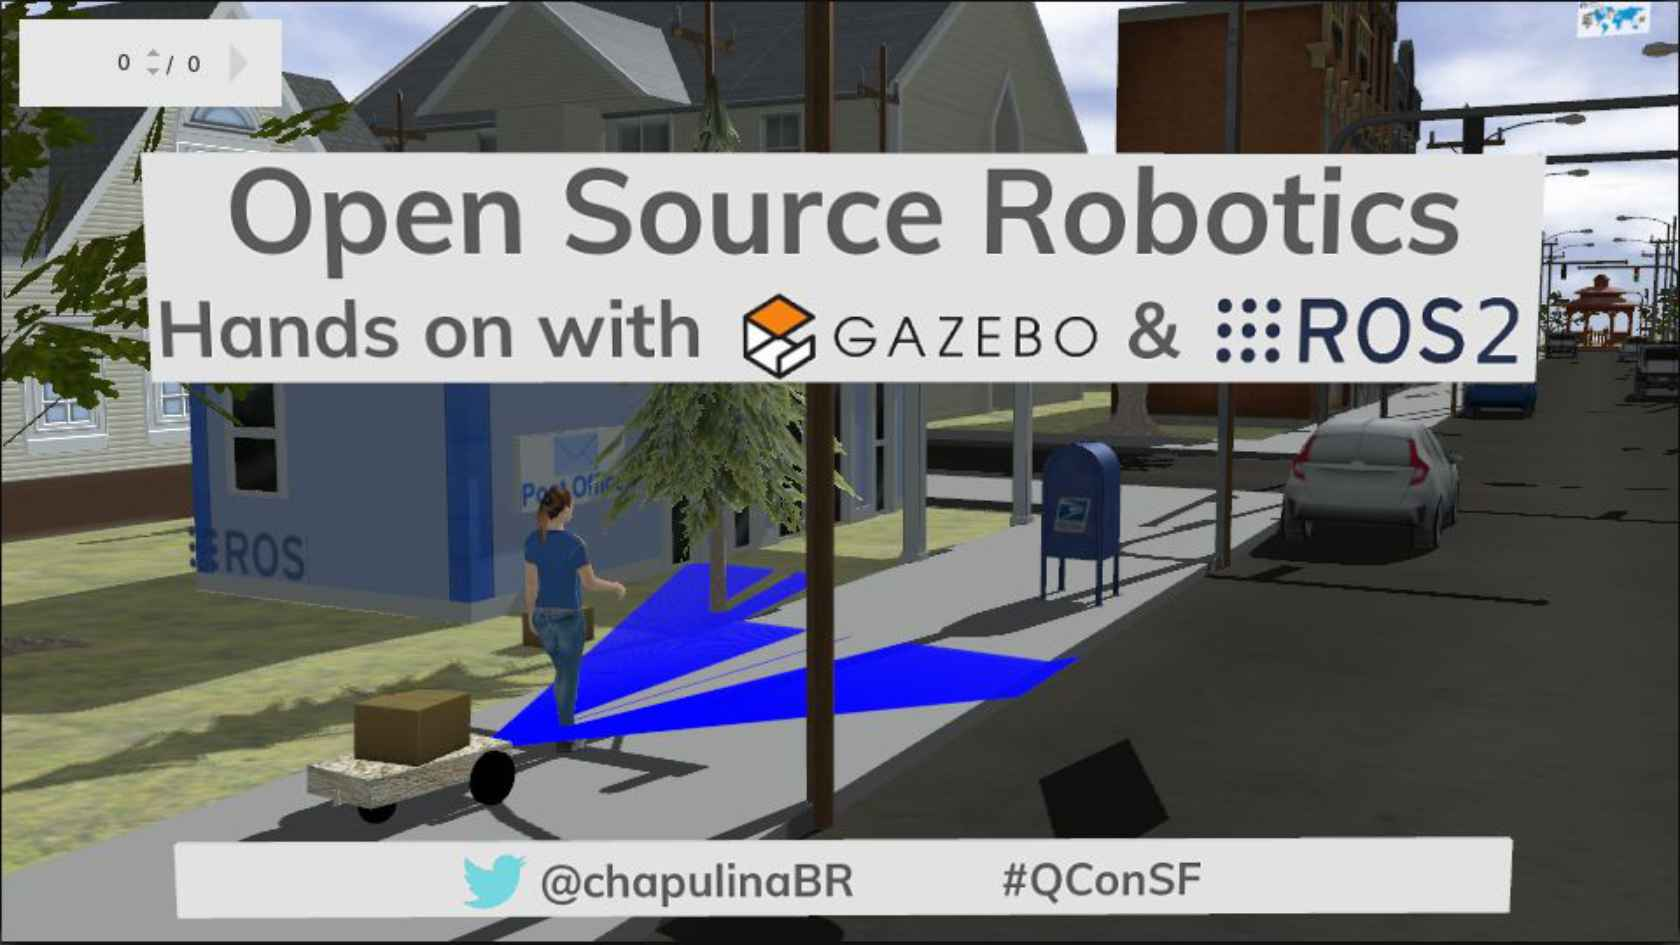 Open Source Robotics: Hands on with Gazebo and ROS 2